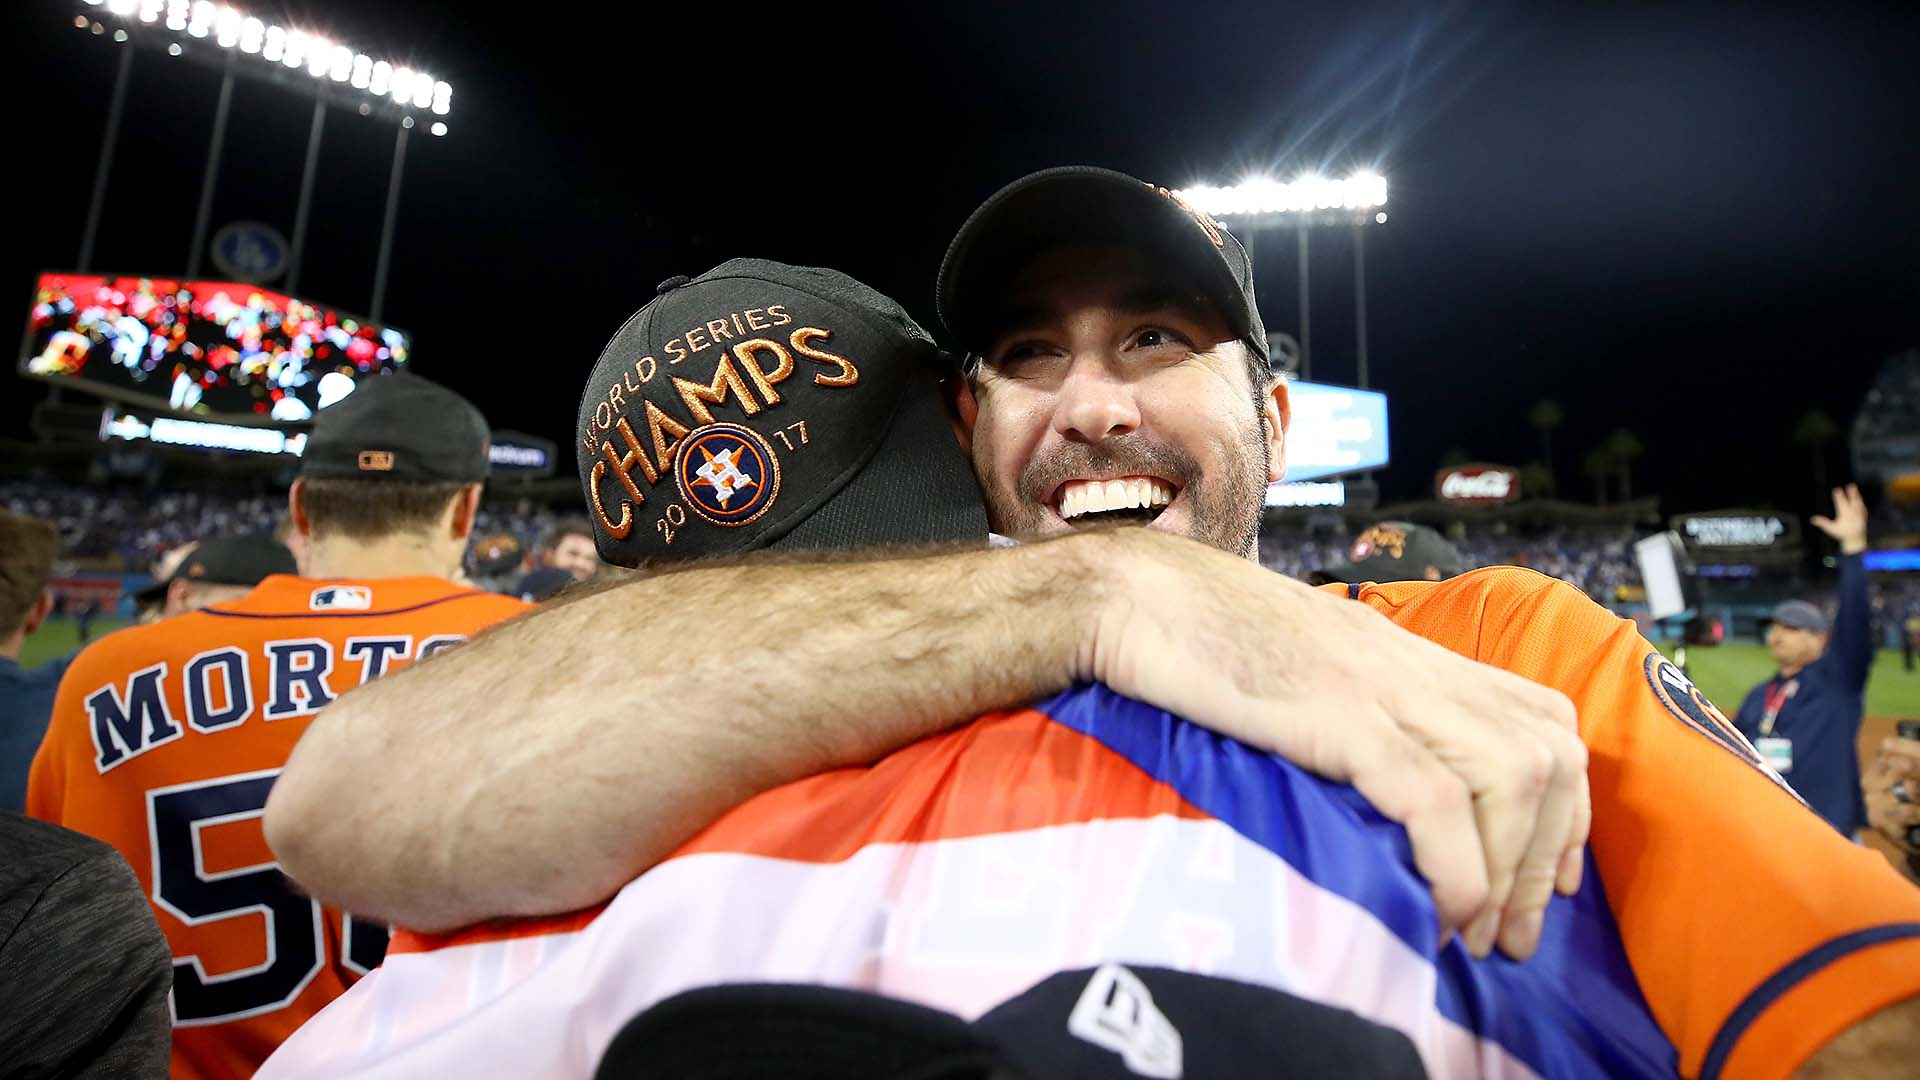 PHOTOS: Houston Astros win World Series in Game 7 over L.A. Dodgers.... : Sporting News RSS - howlDb